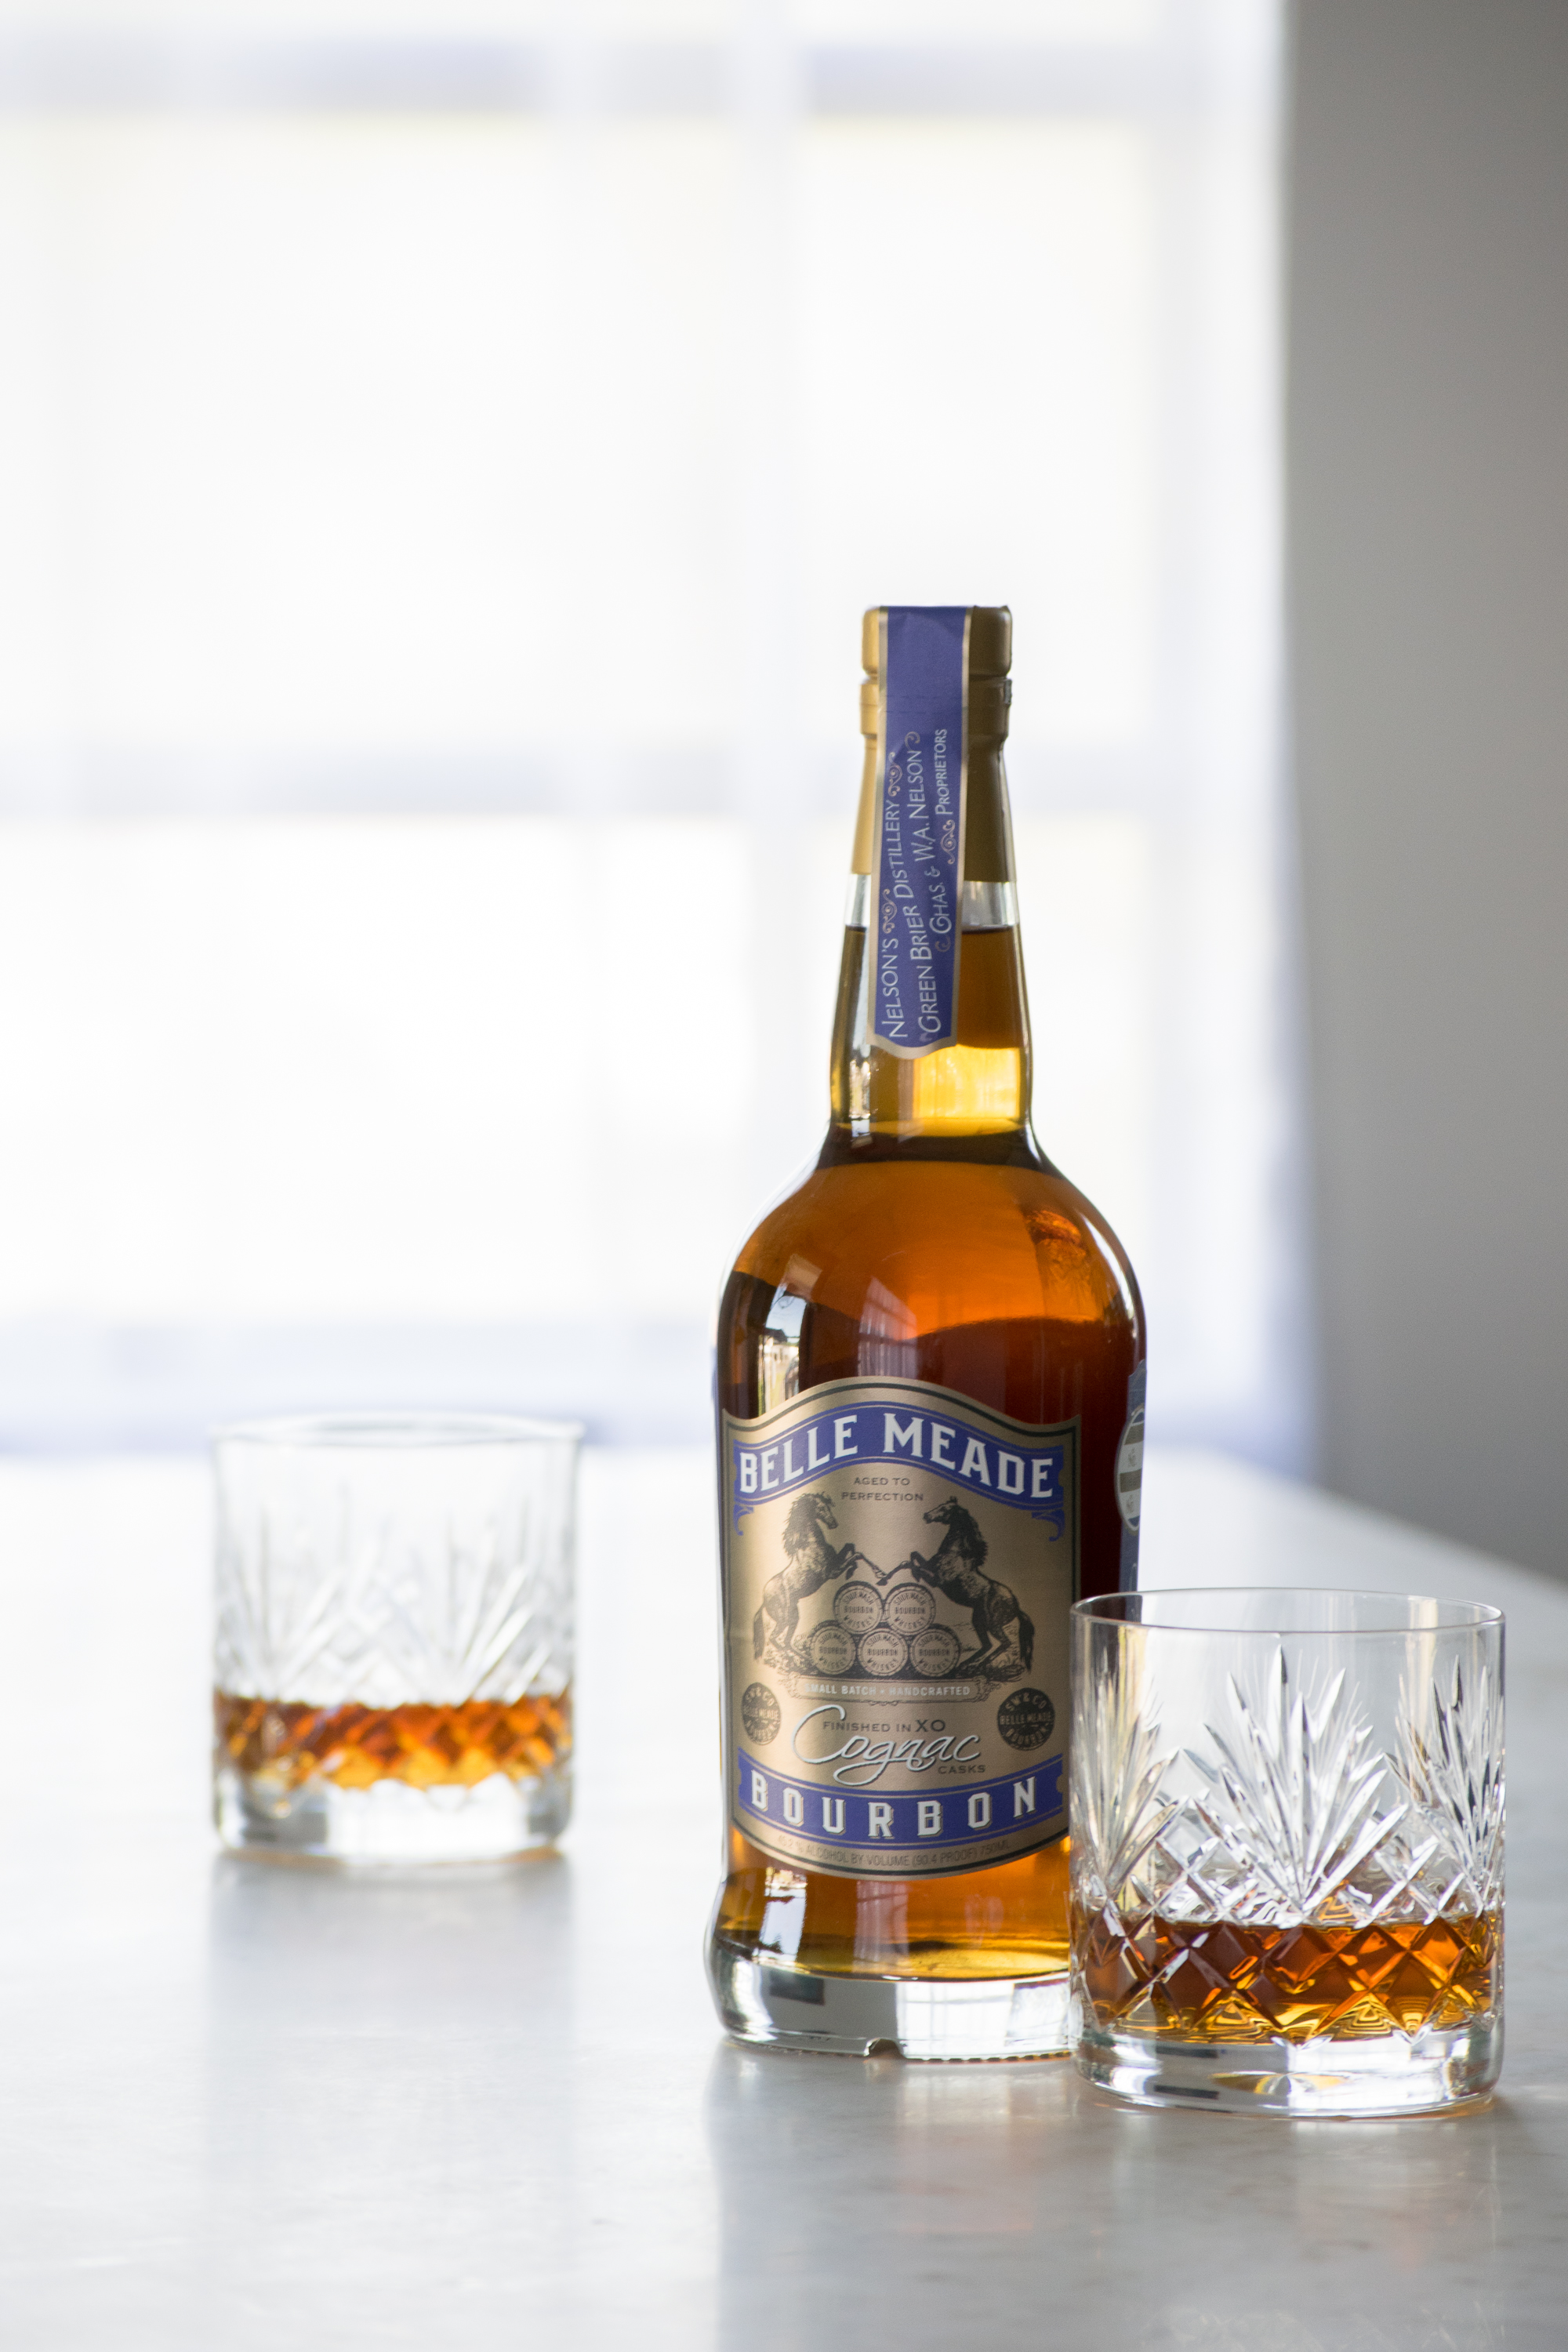 Belle meade cognac cask finish bourbon review the whiskey reviewer - Tennessee cognac ...